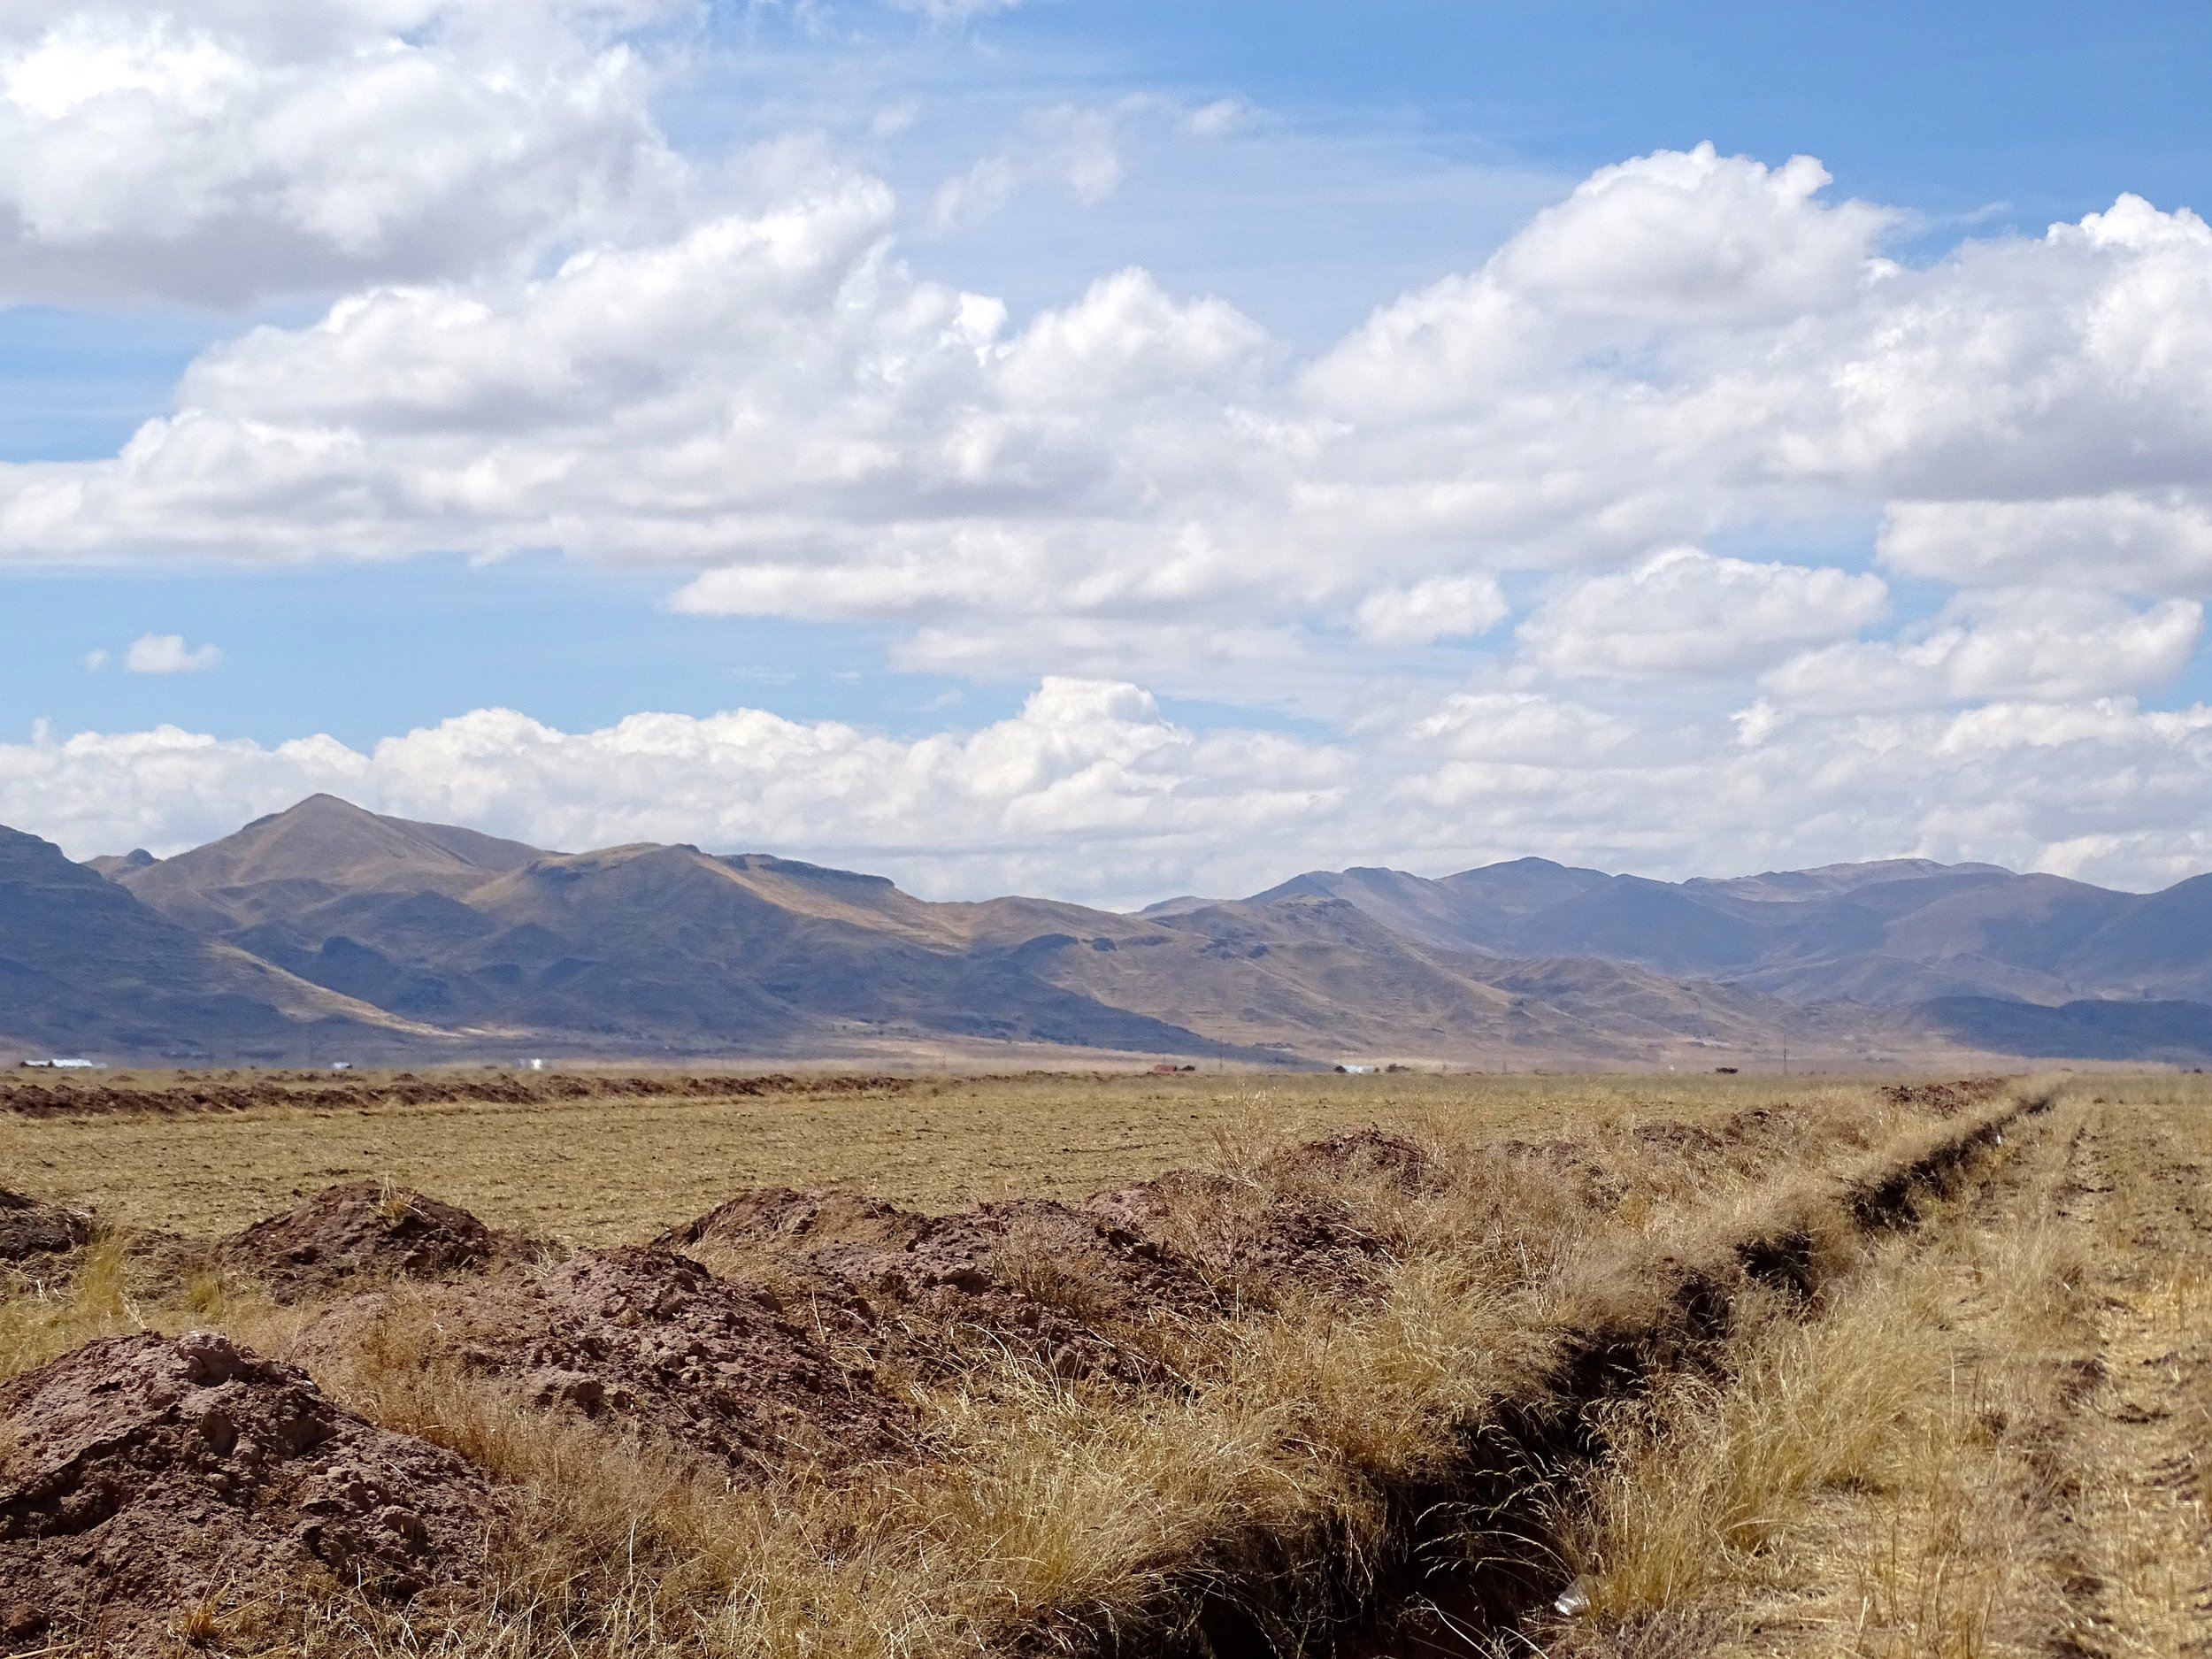 Flat, dry fields on the Altiplano, just northwest of Lago Titicaca.